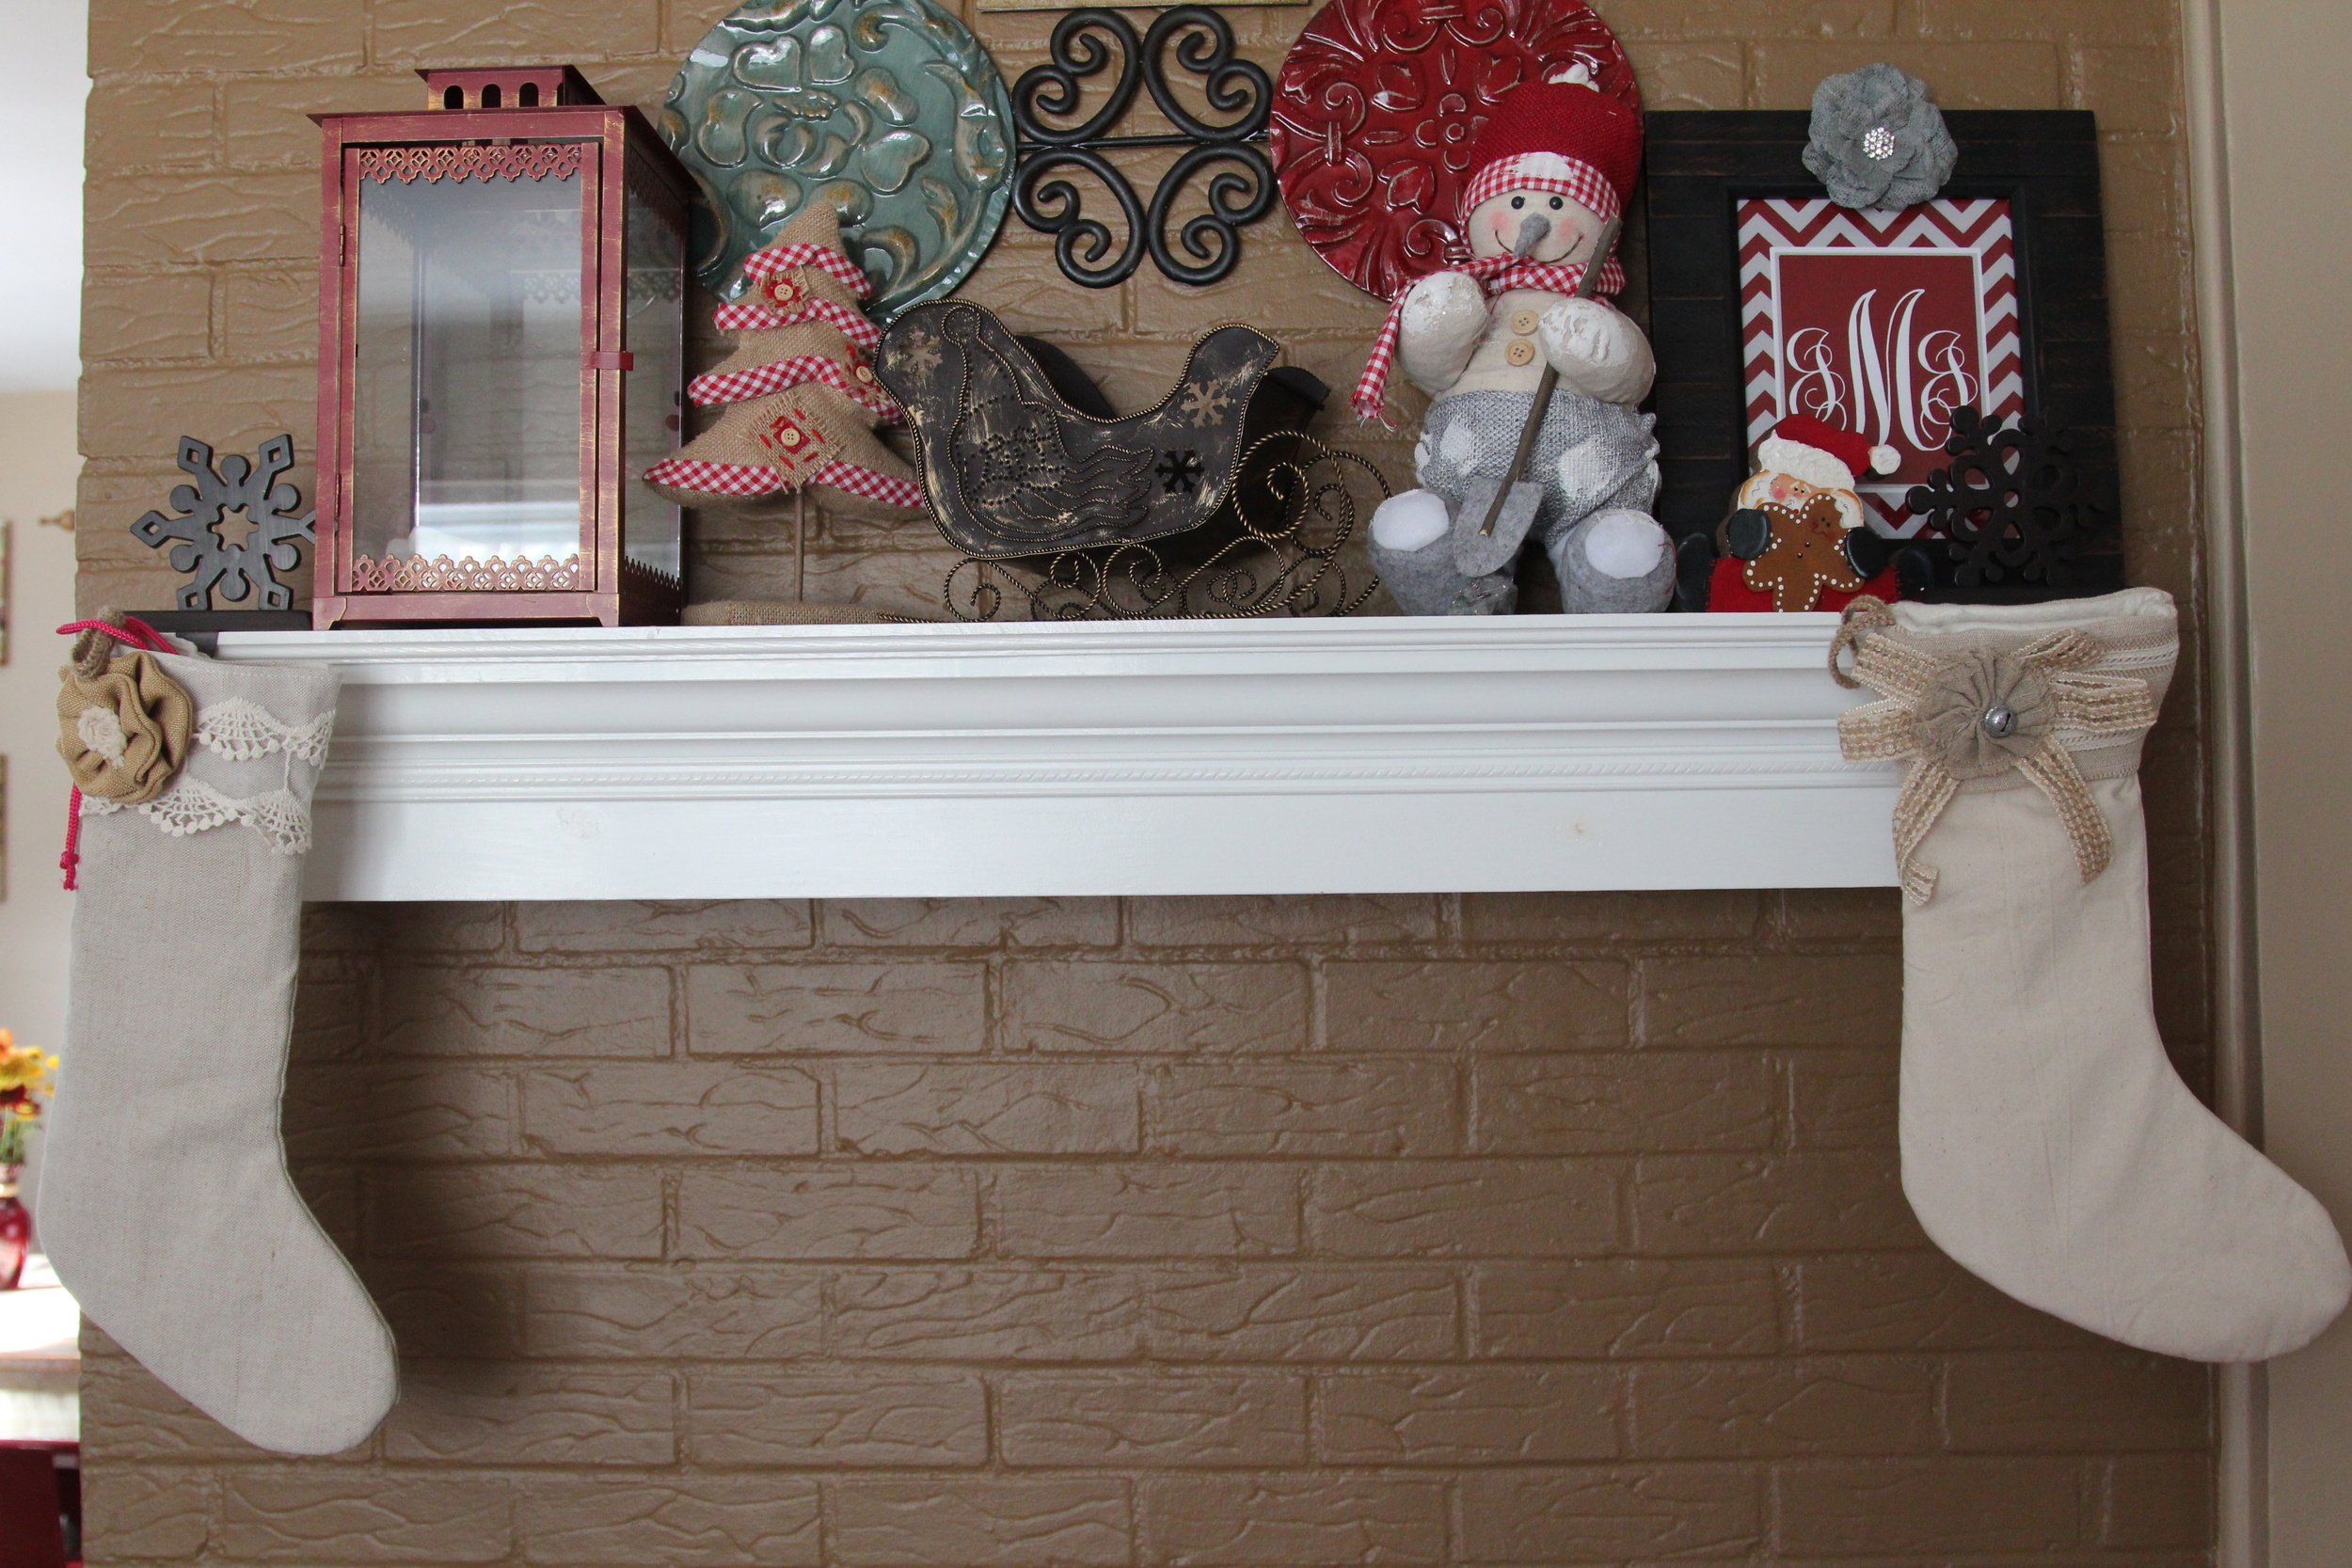 Our mantle